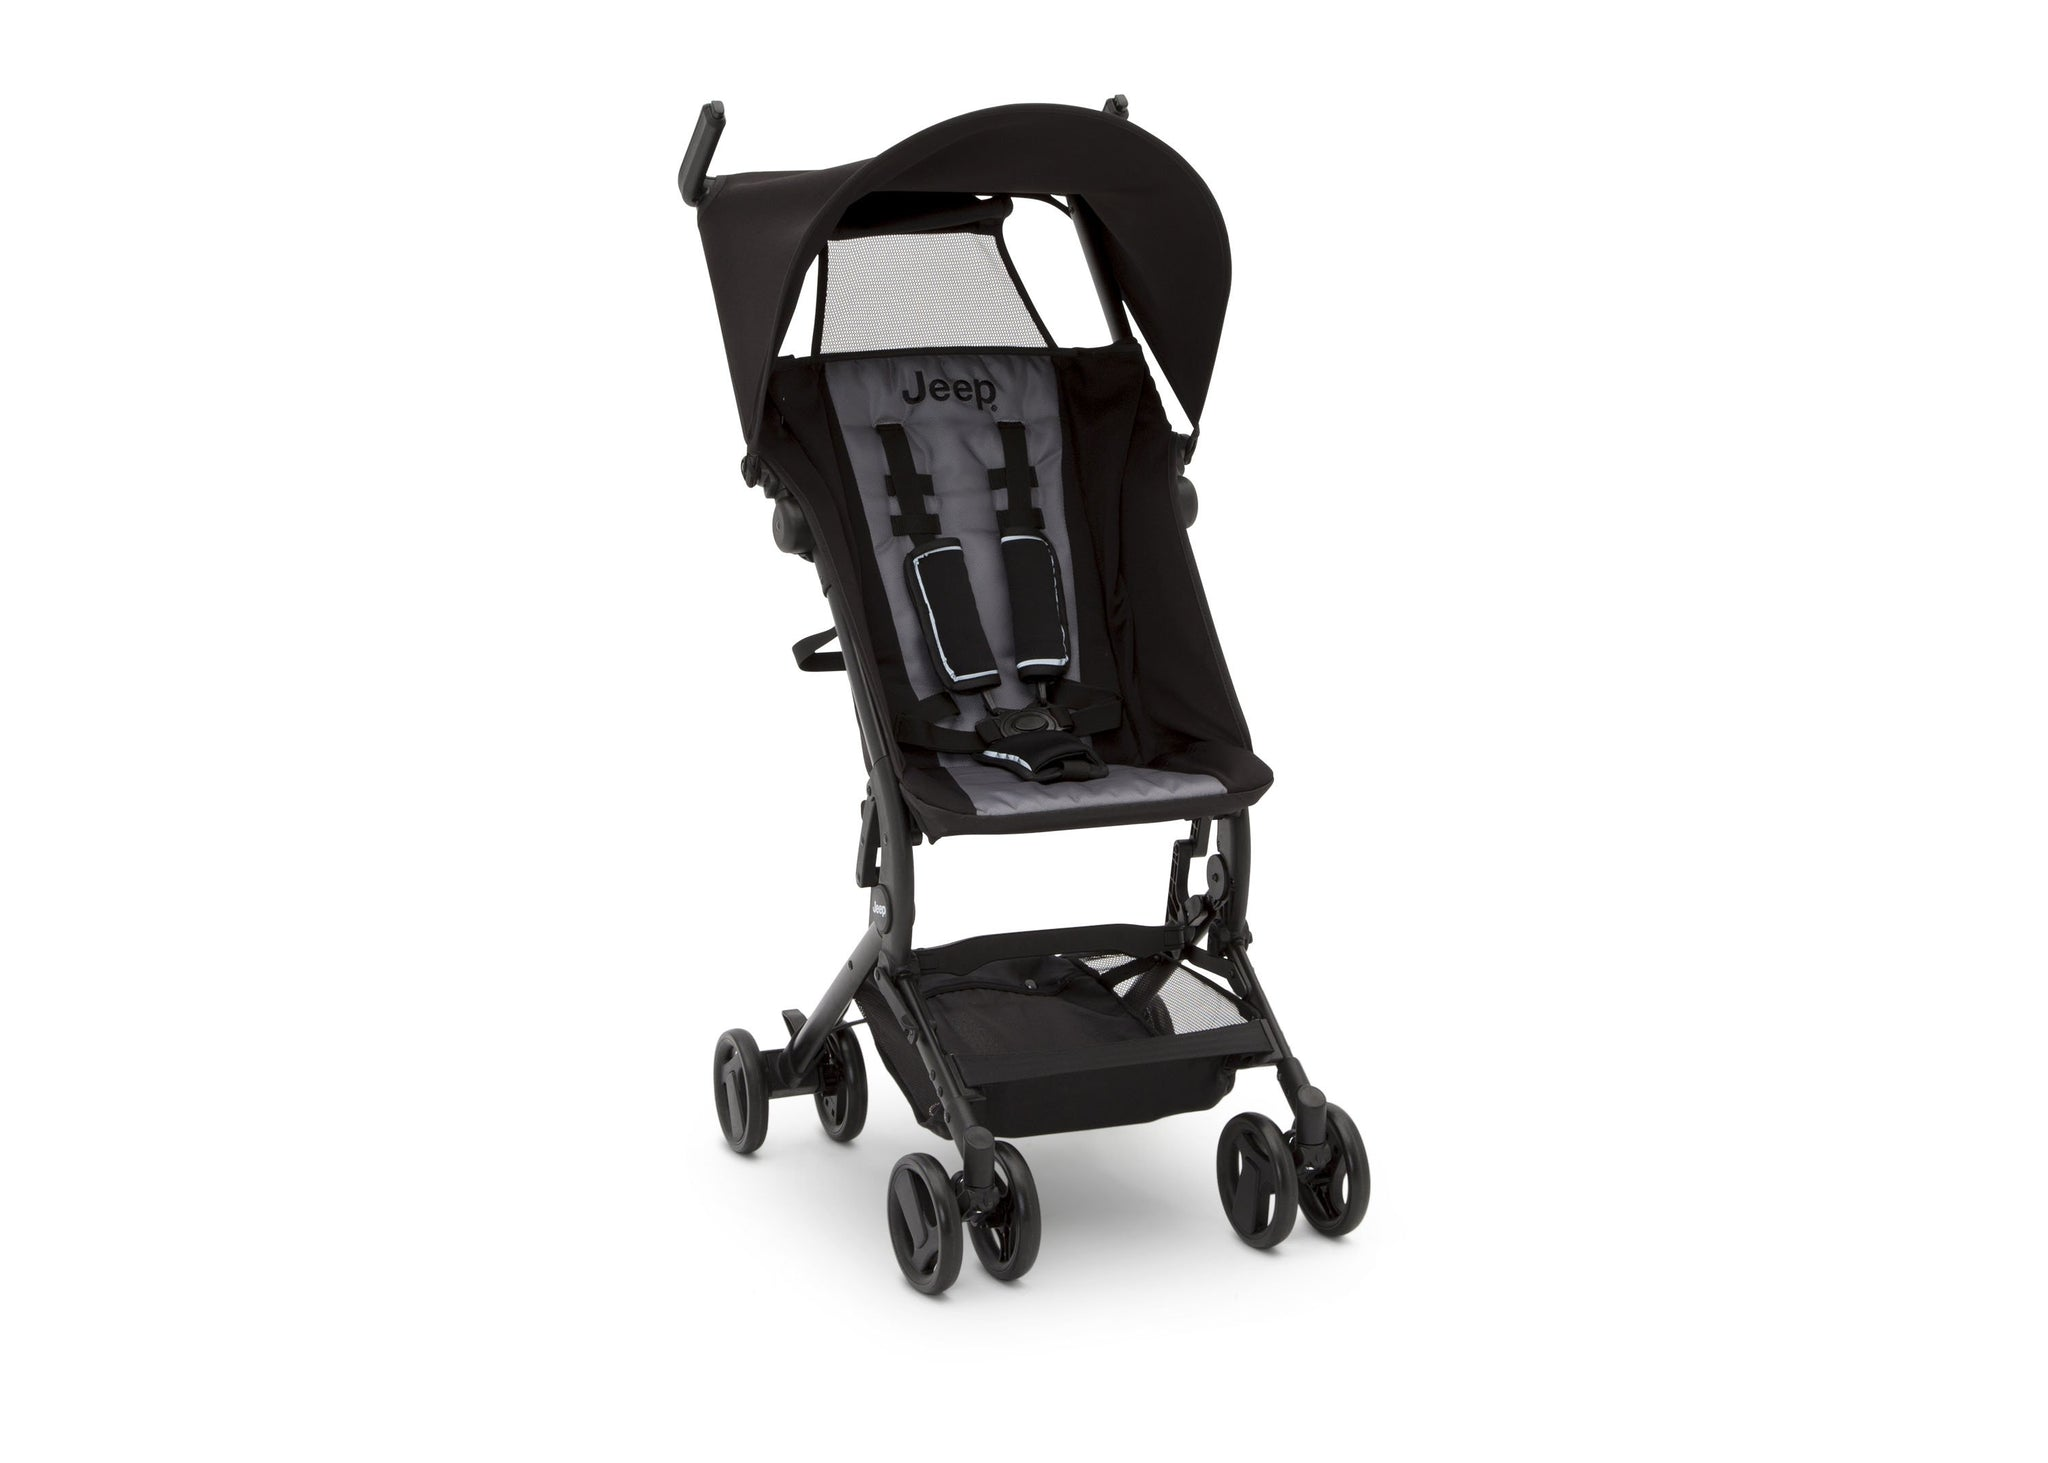 Jeep® Clutch Plus Travel Stroller with Reclining Seat Black with Grey (2184), Front  View